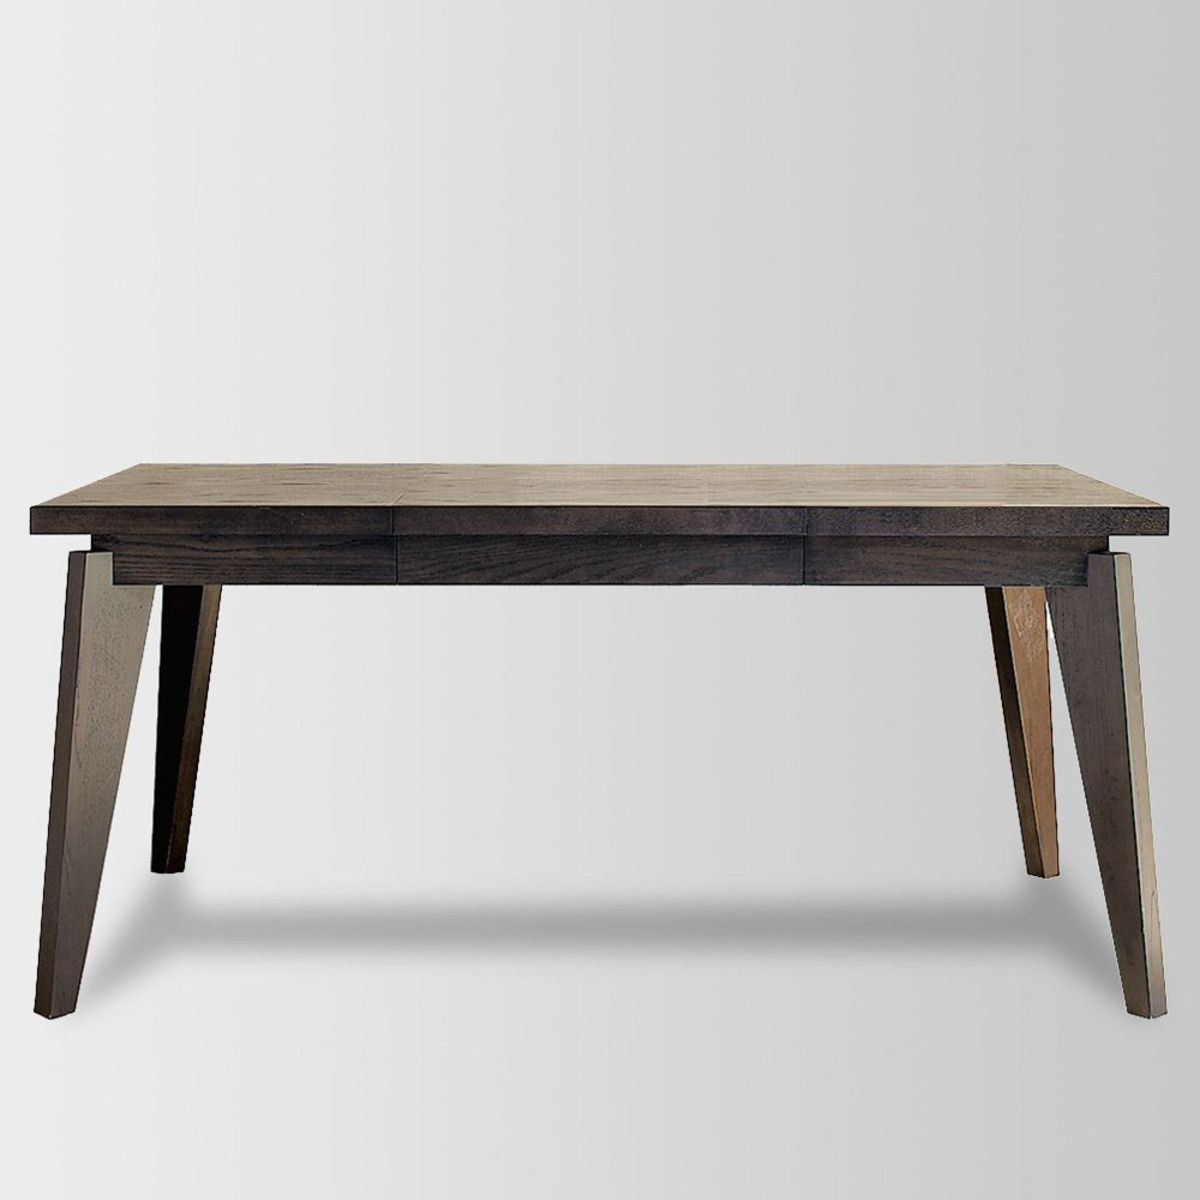 Angled-Leg Expandable Table West Elm $899 | Interiors